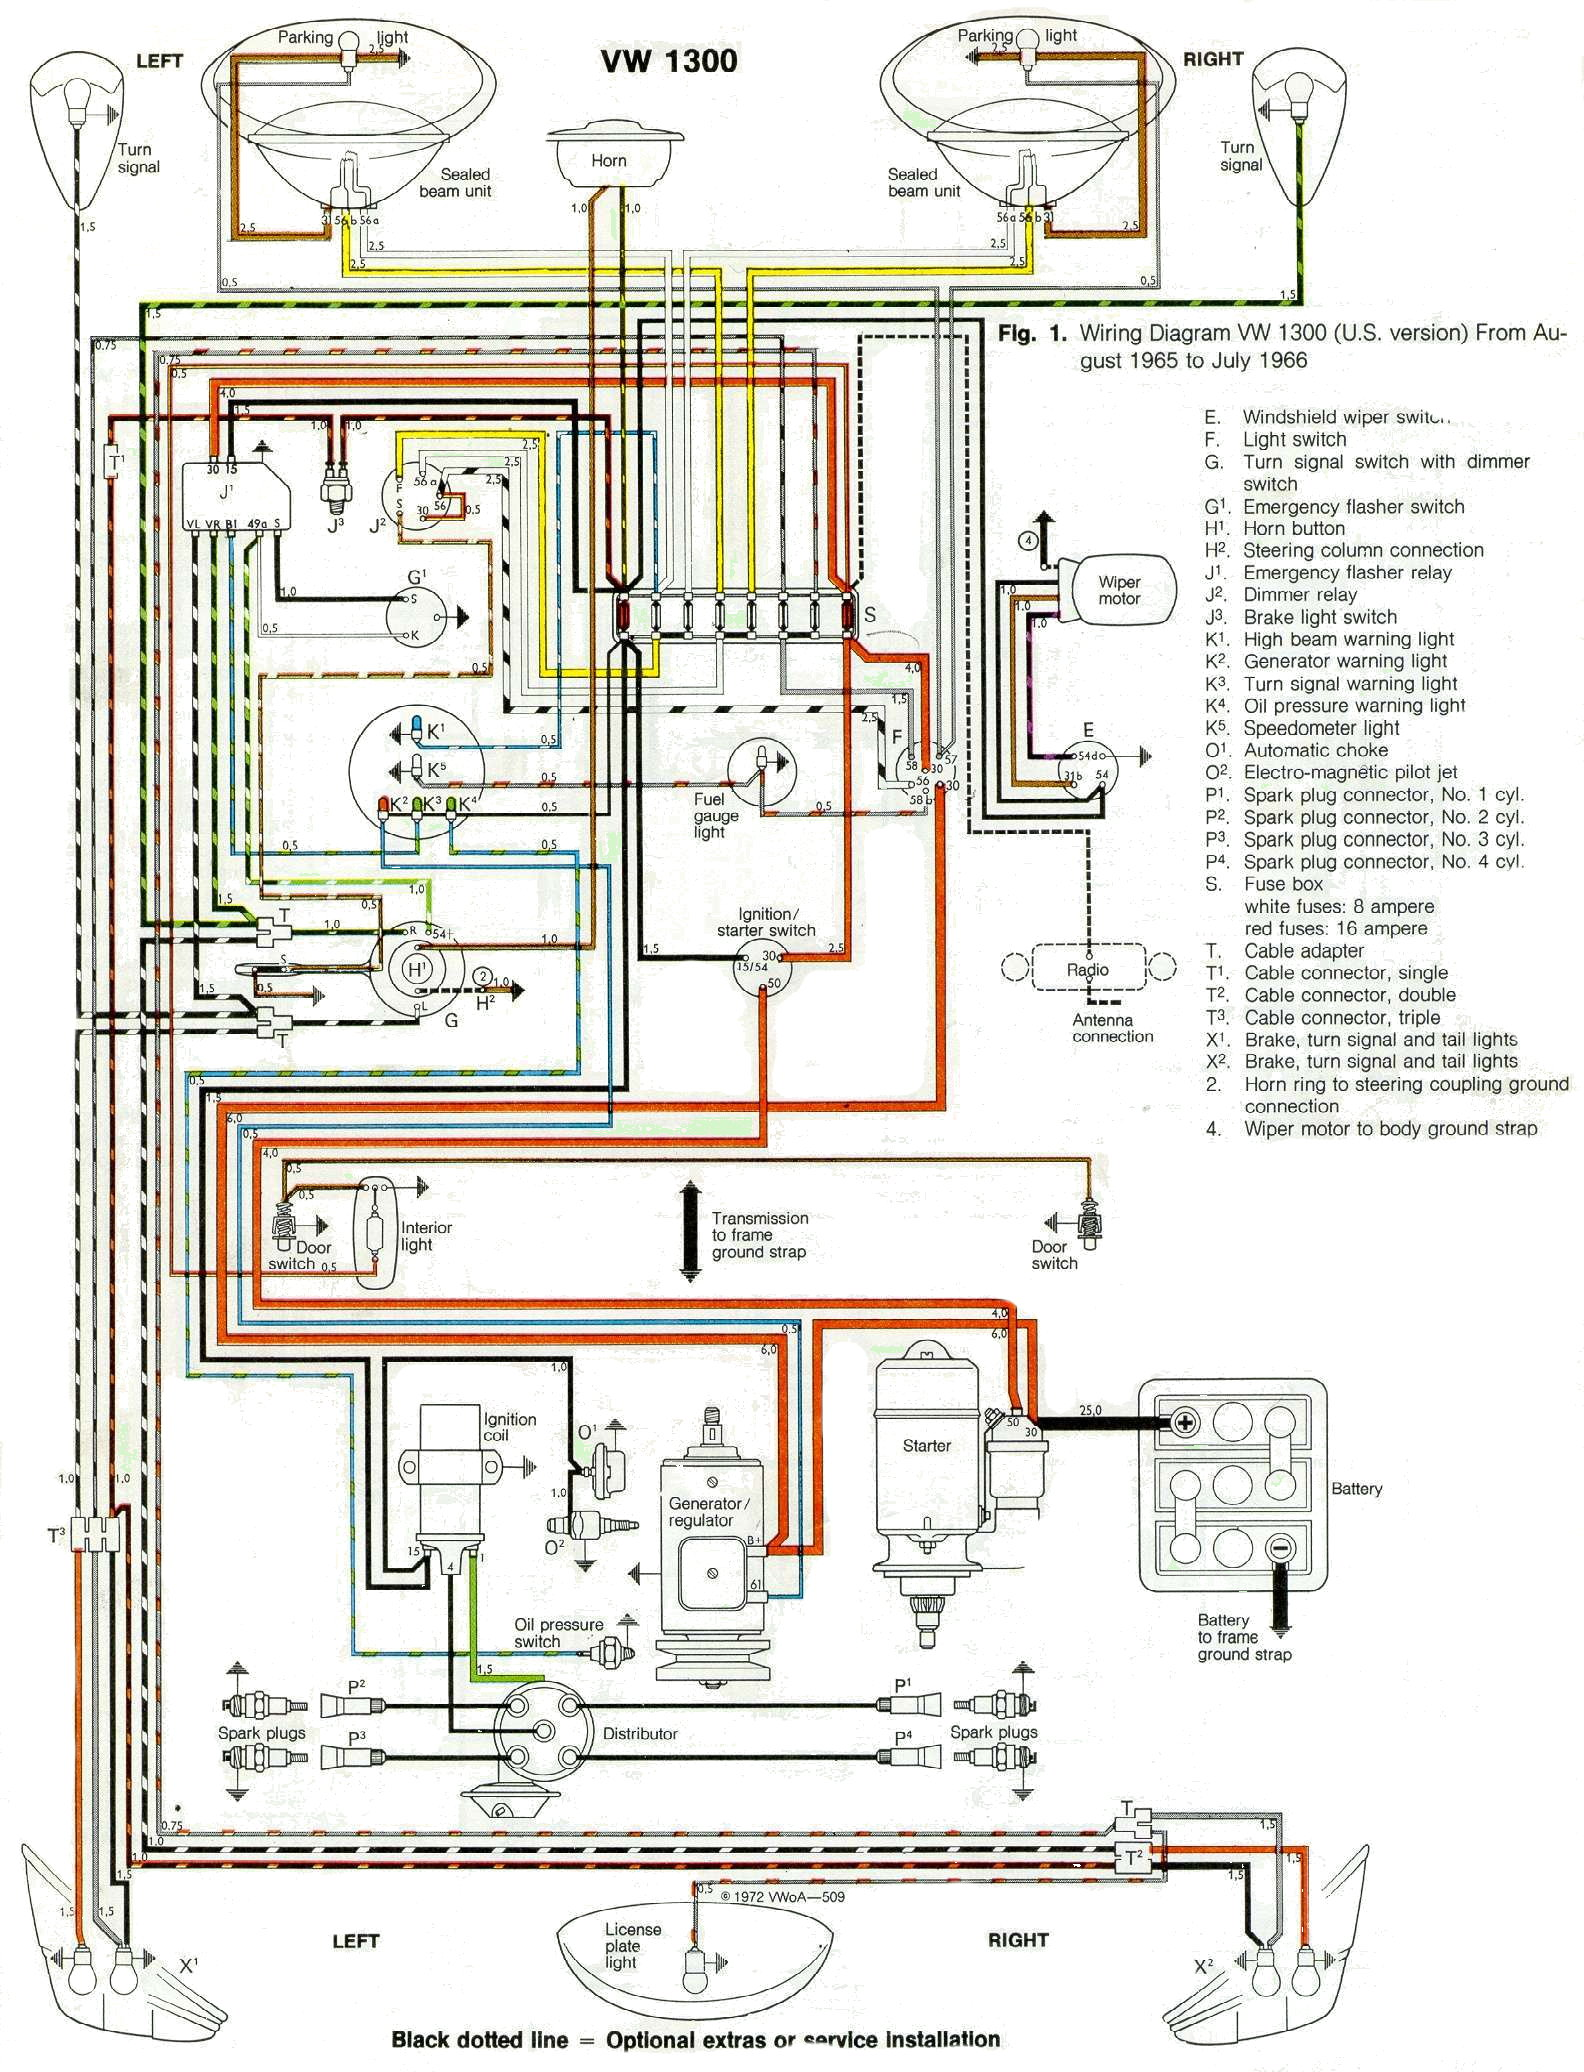 1966 wiring diagram rh 1966vwbeetle com VW Karmann Ghia Lifted VW Thing